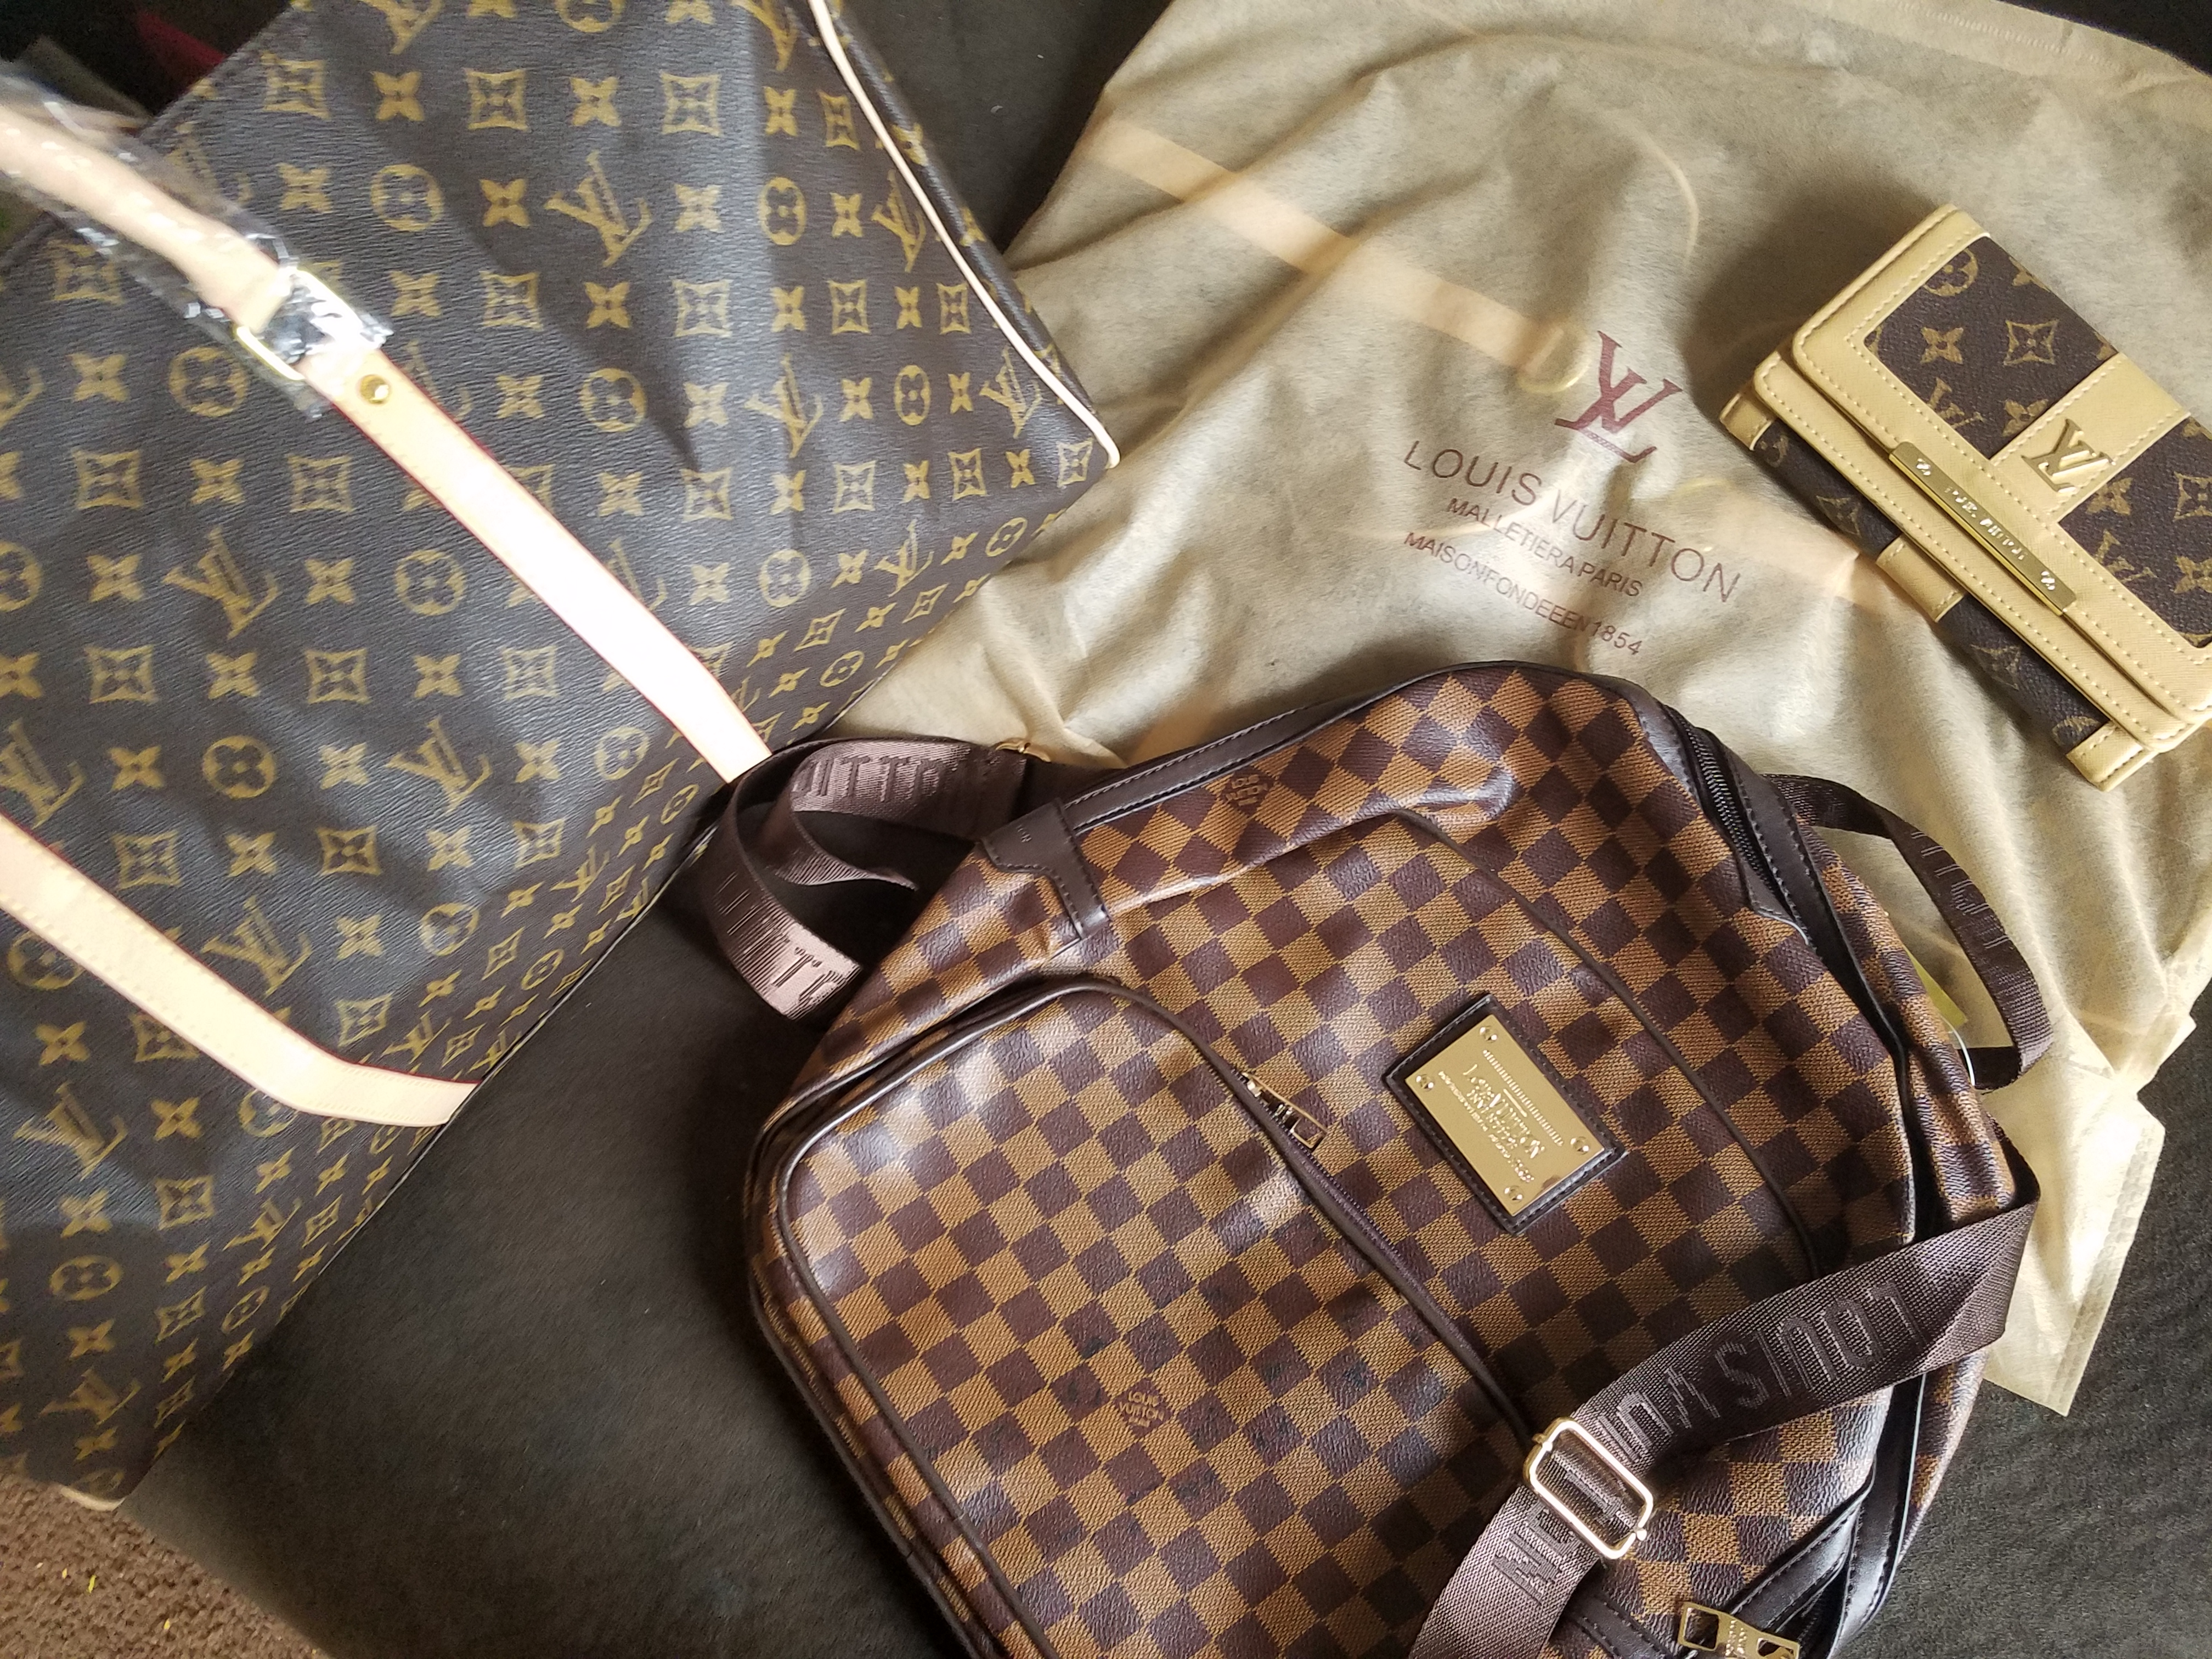 LOUIS Vuitton BRAND NEW leather backpack